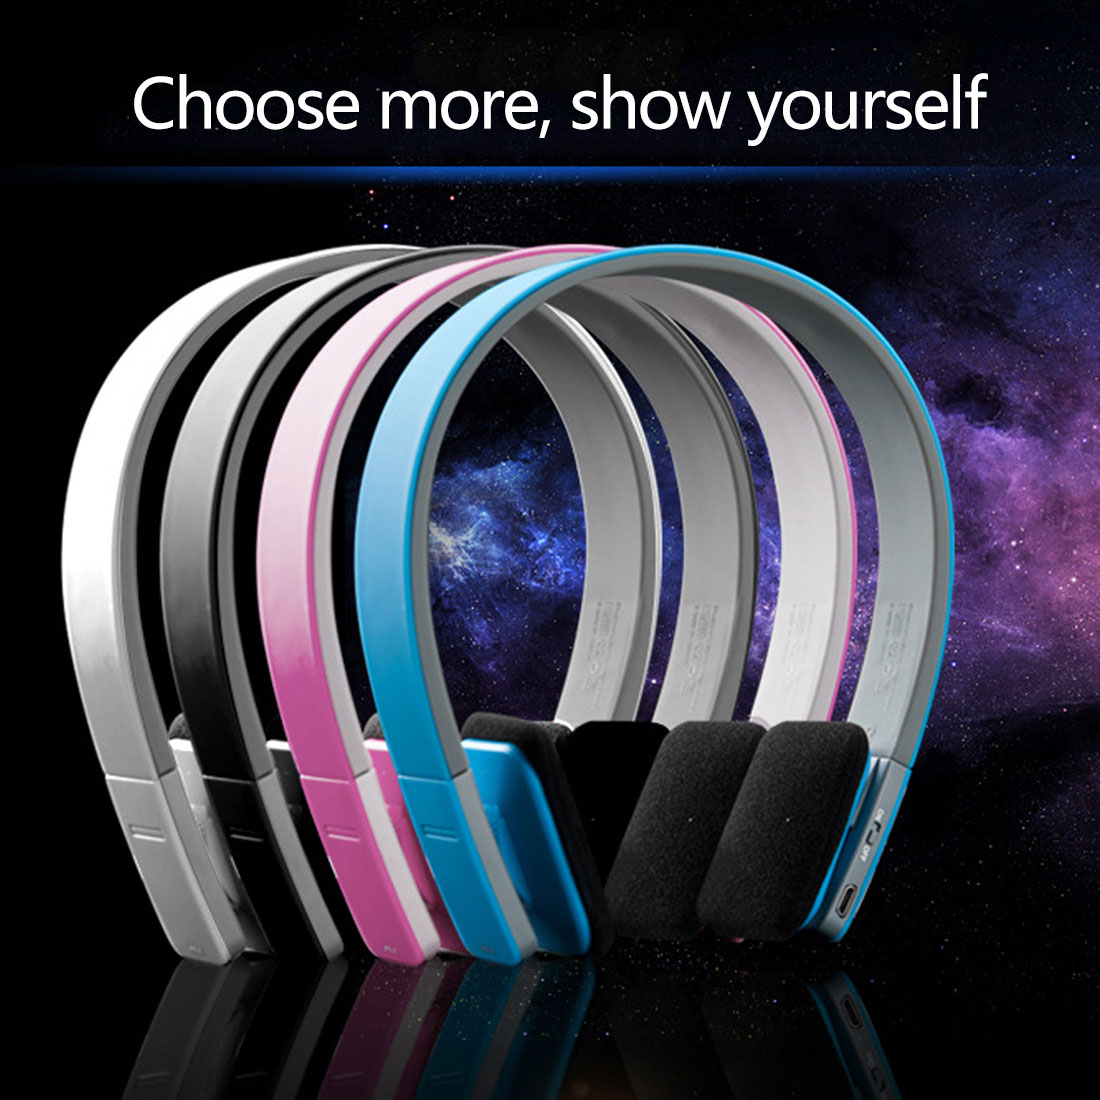 BQ618 Wireless Bluetooth 4.1 EDR Smart Headset Headphone with MIC for Phone Tablet PSP Support 3.5mm Stereo Audio Handsfree